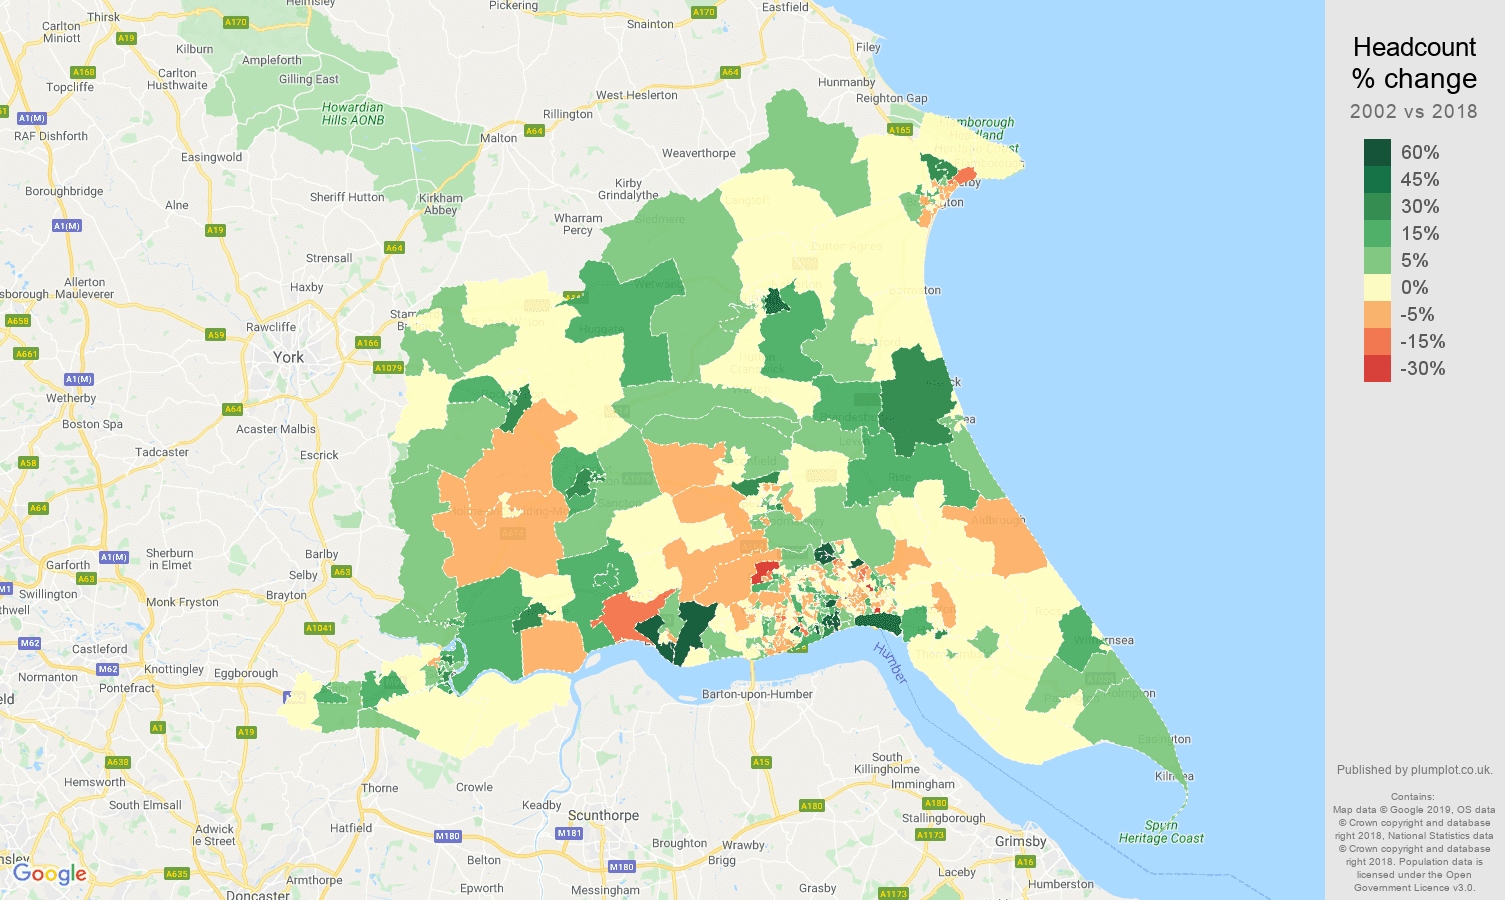 East Riding of Yorkshire headcount change map